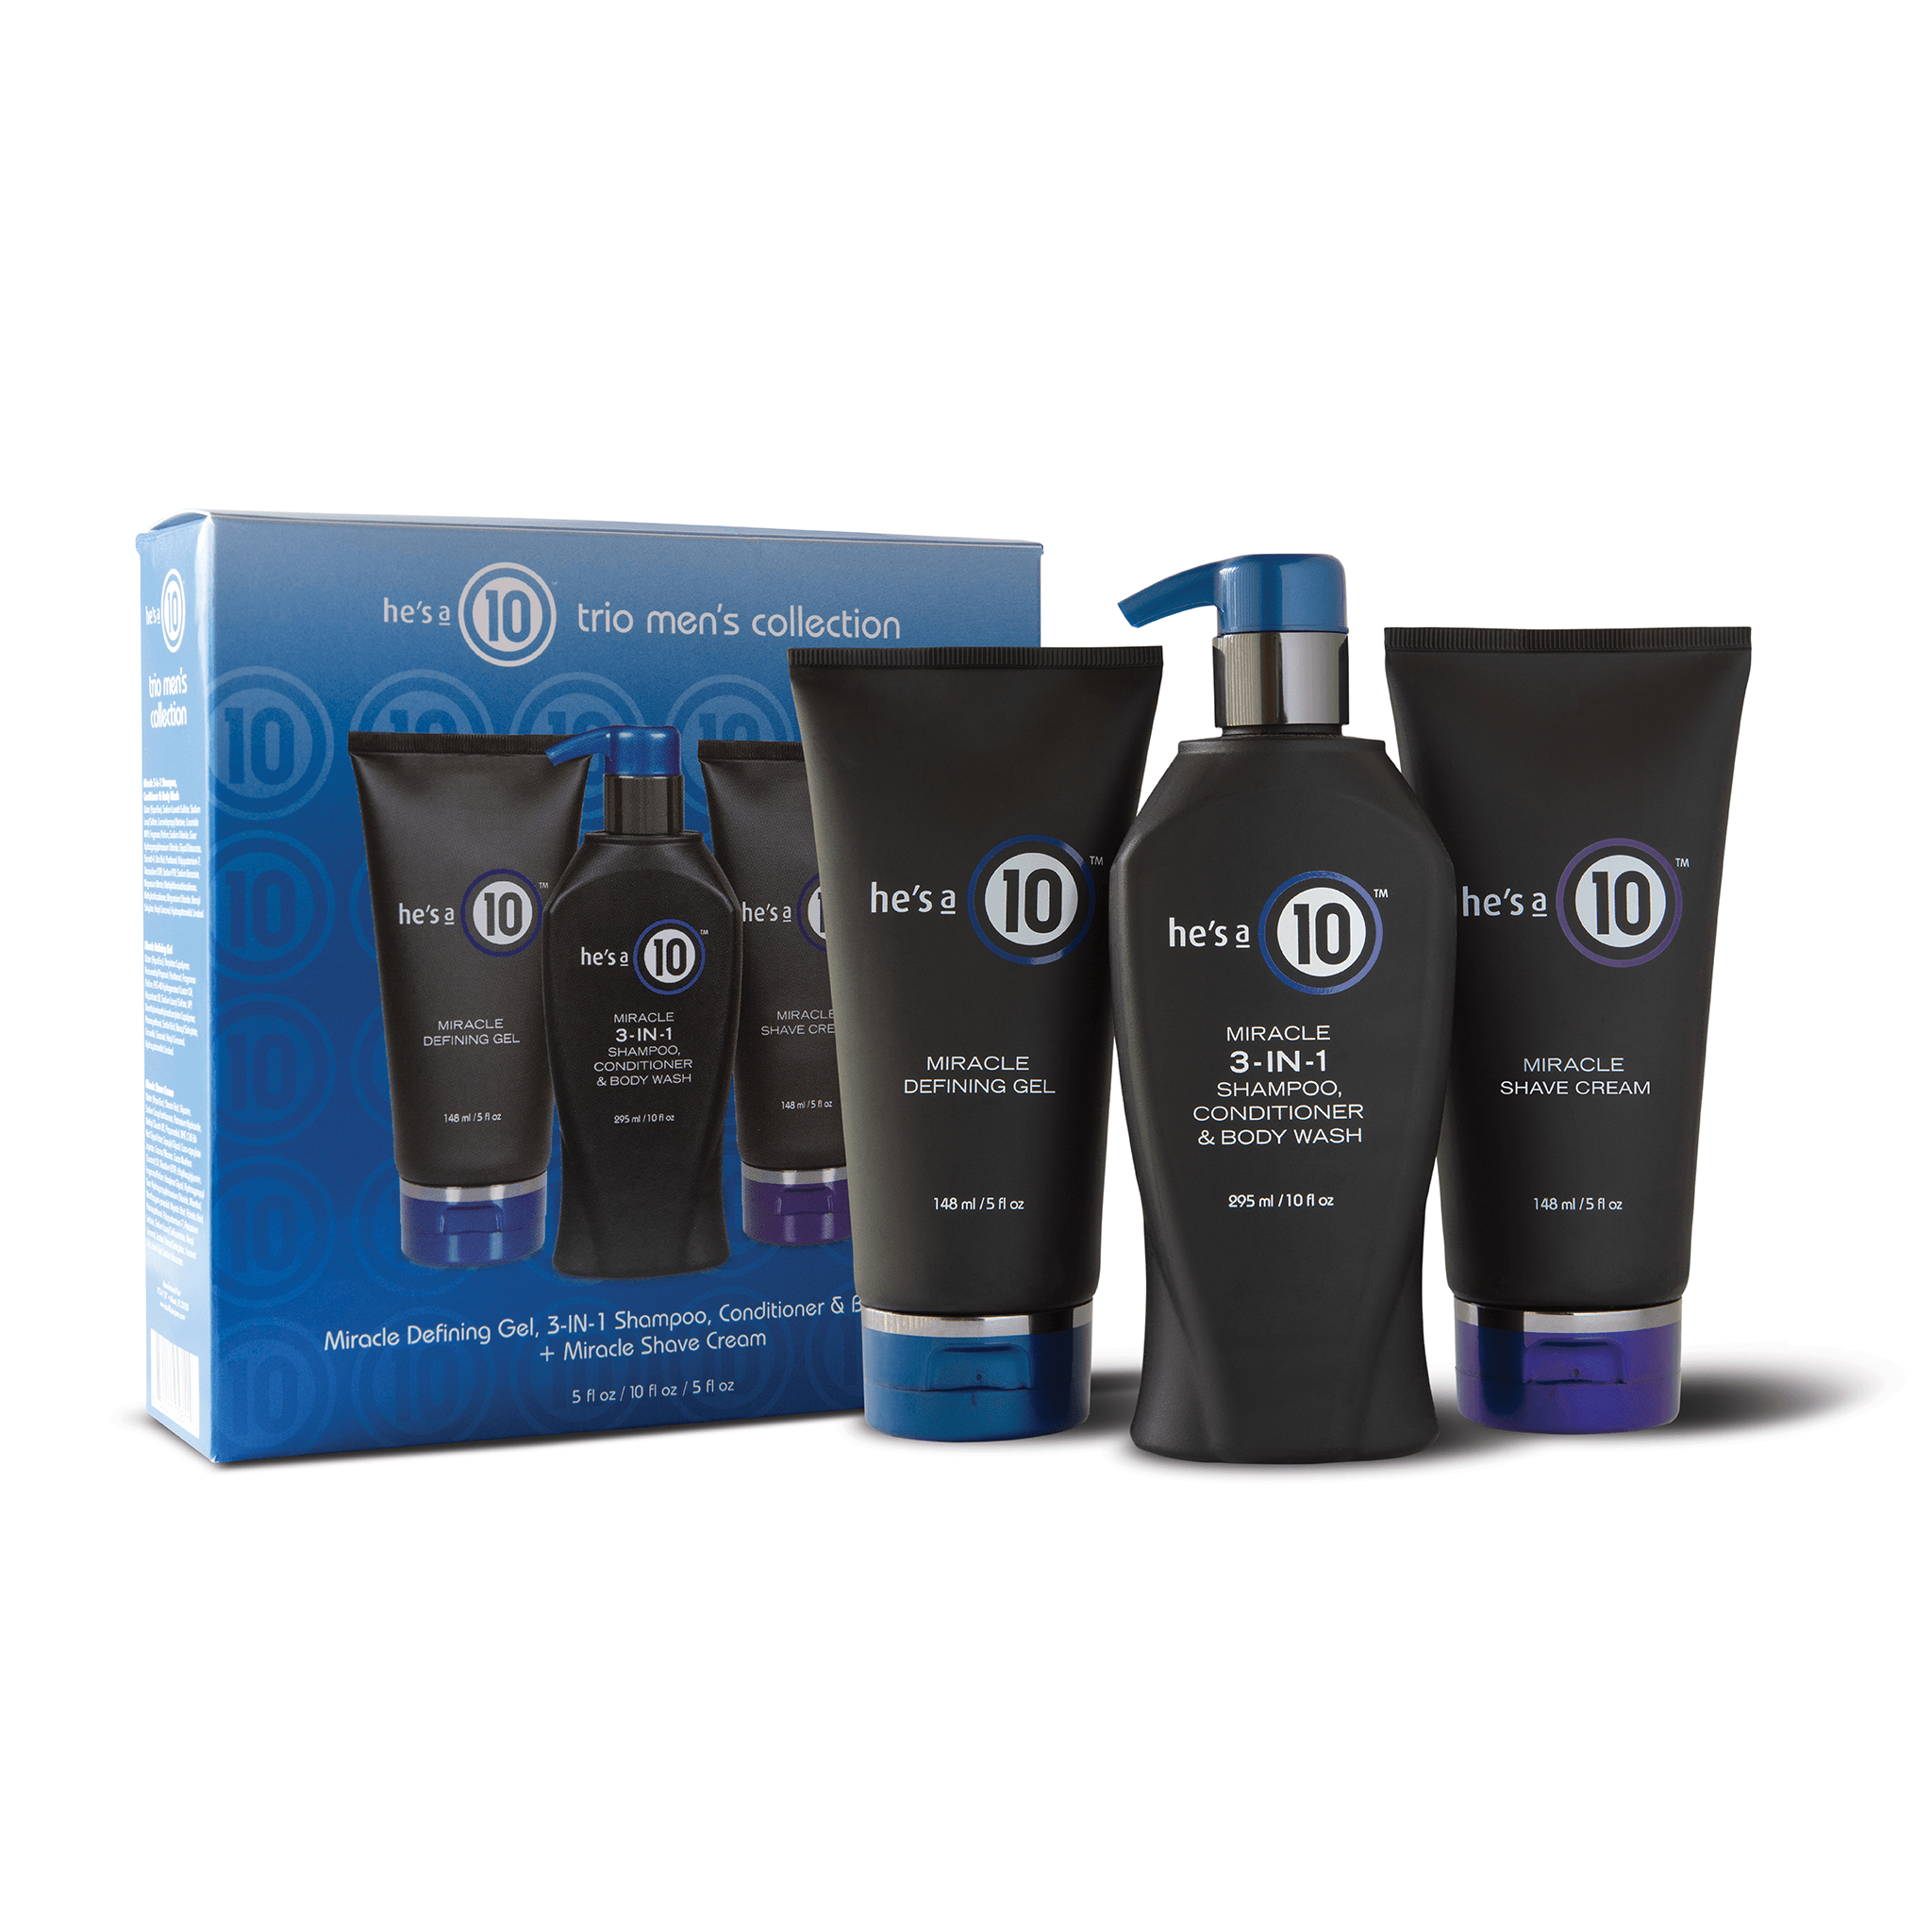 It's a 10 Miracle Men's Collection Gift Set